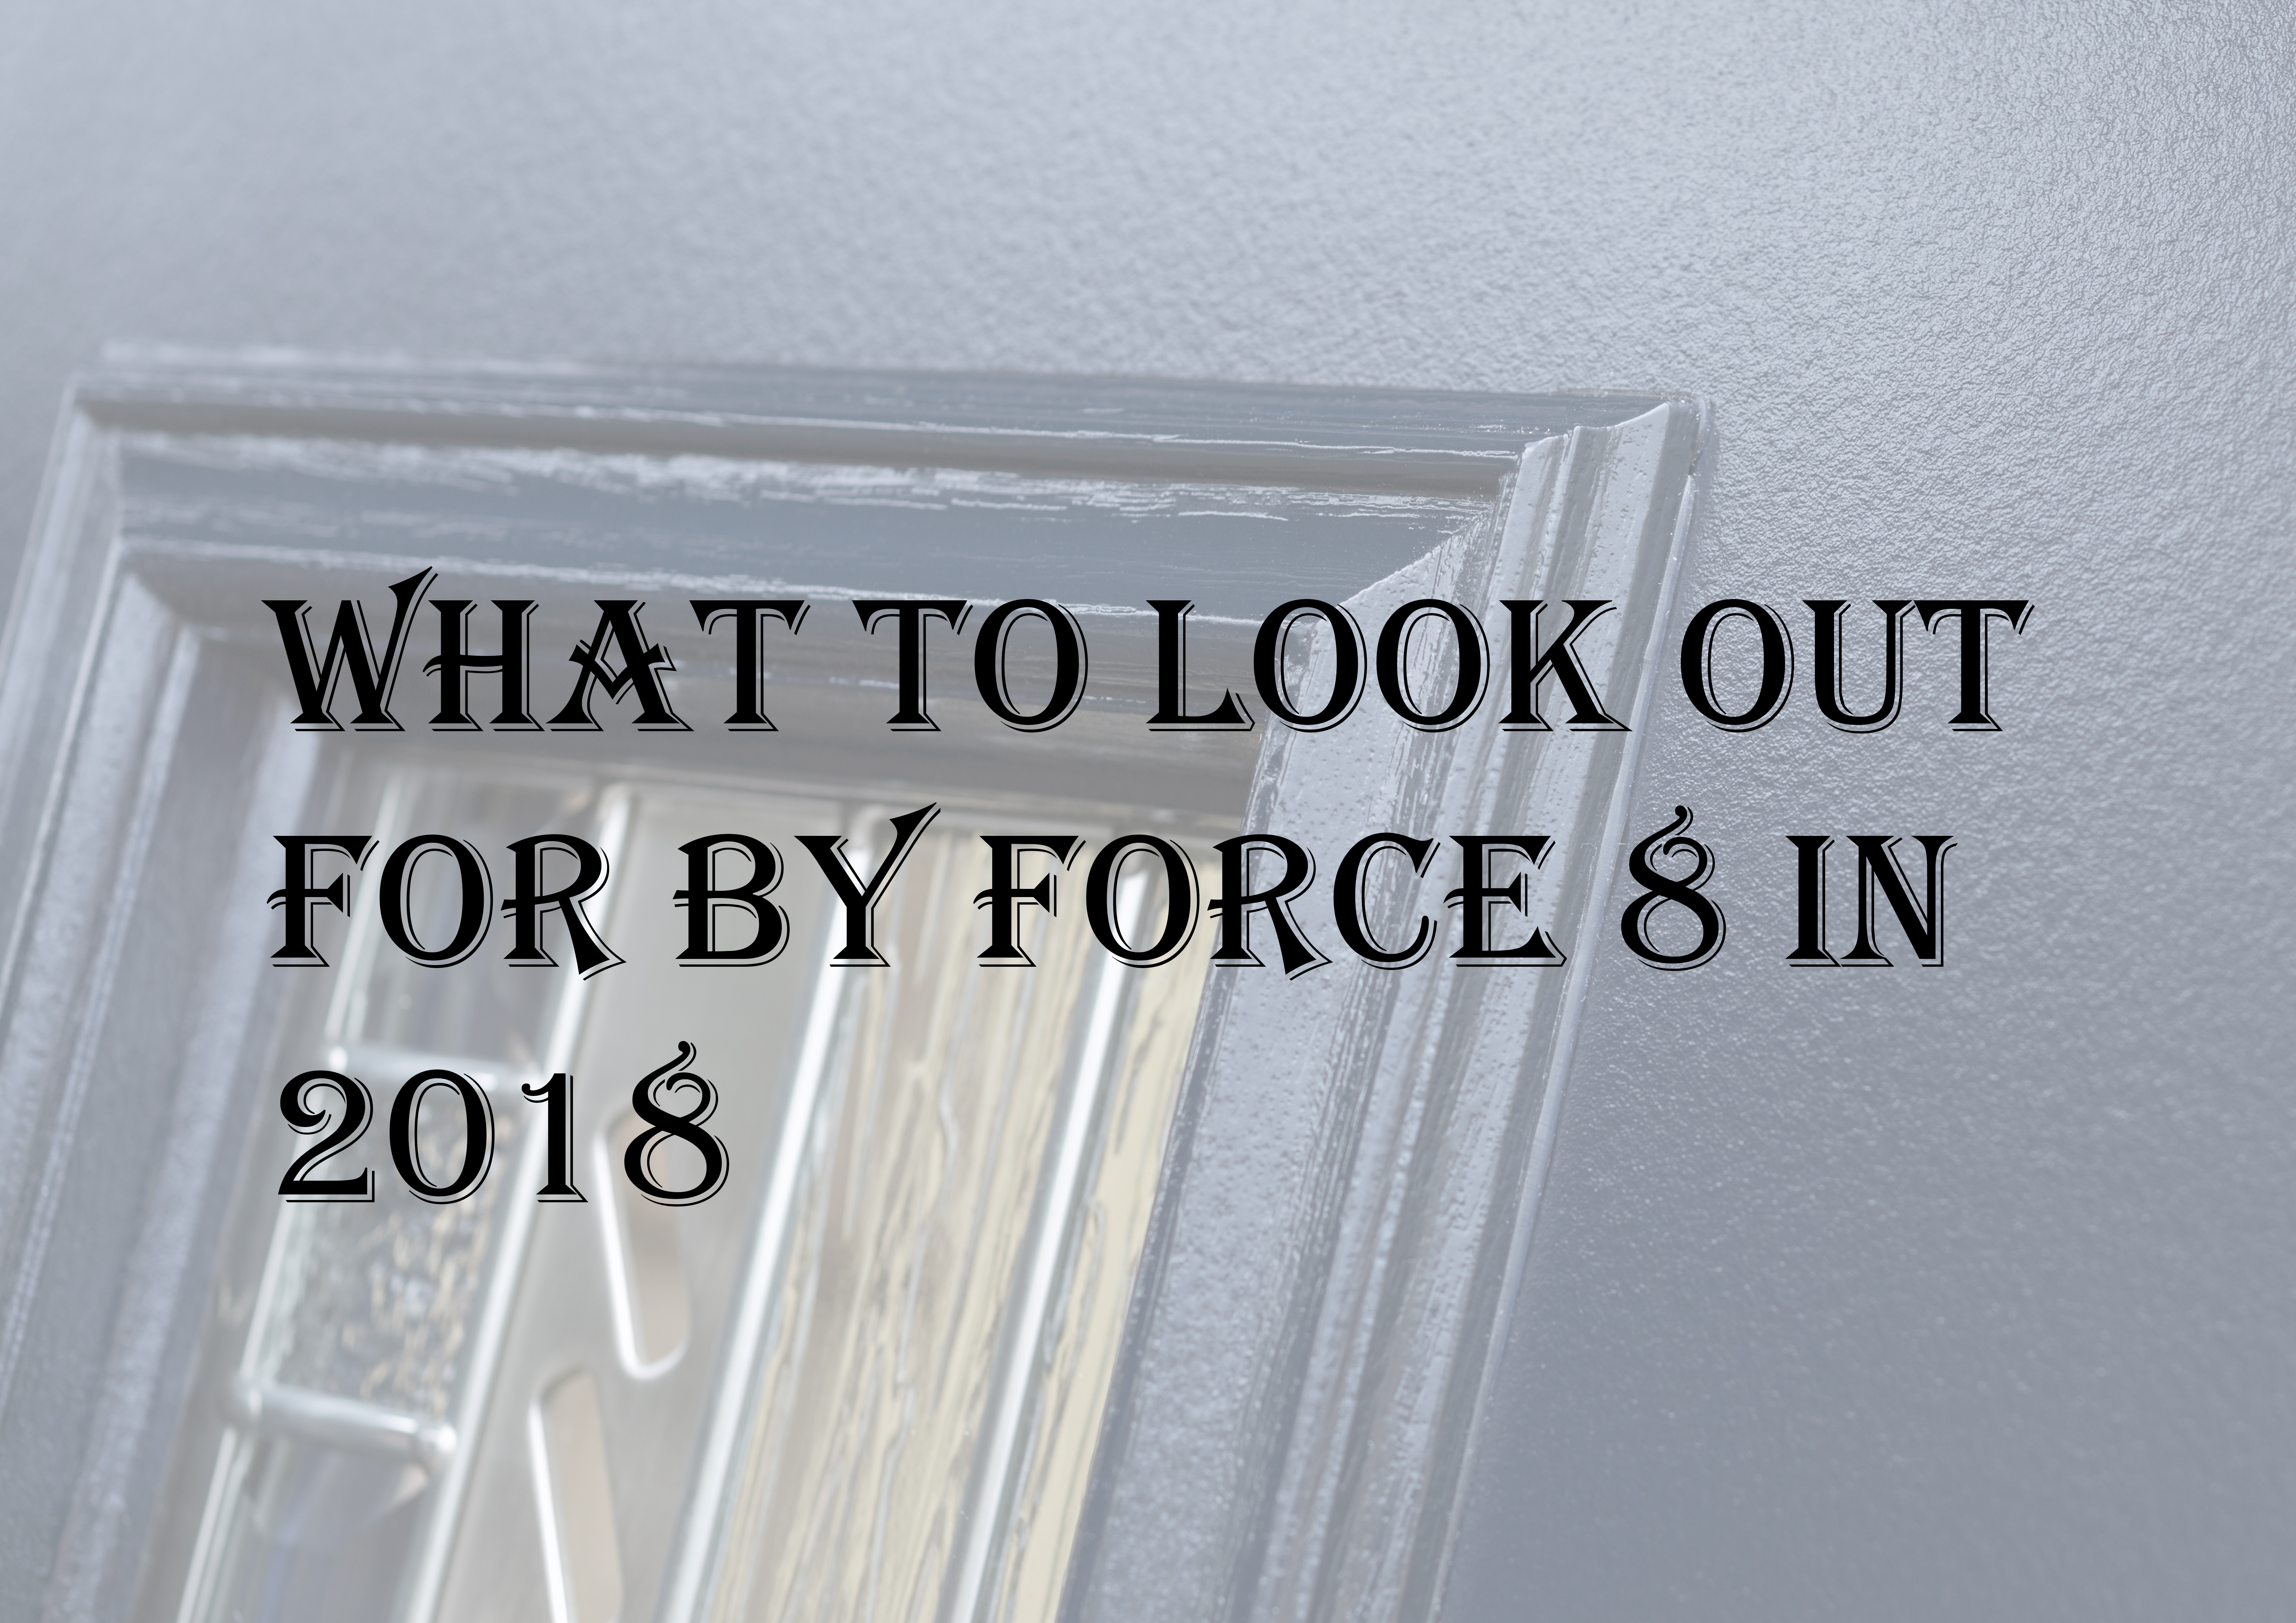 What to look out for by Force 8 in 2018